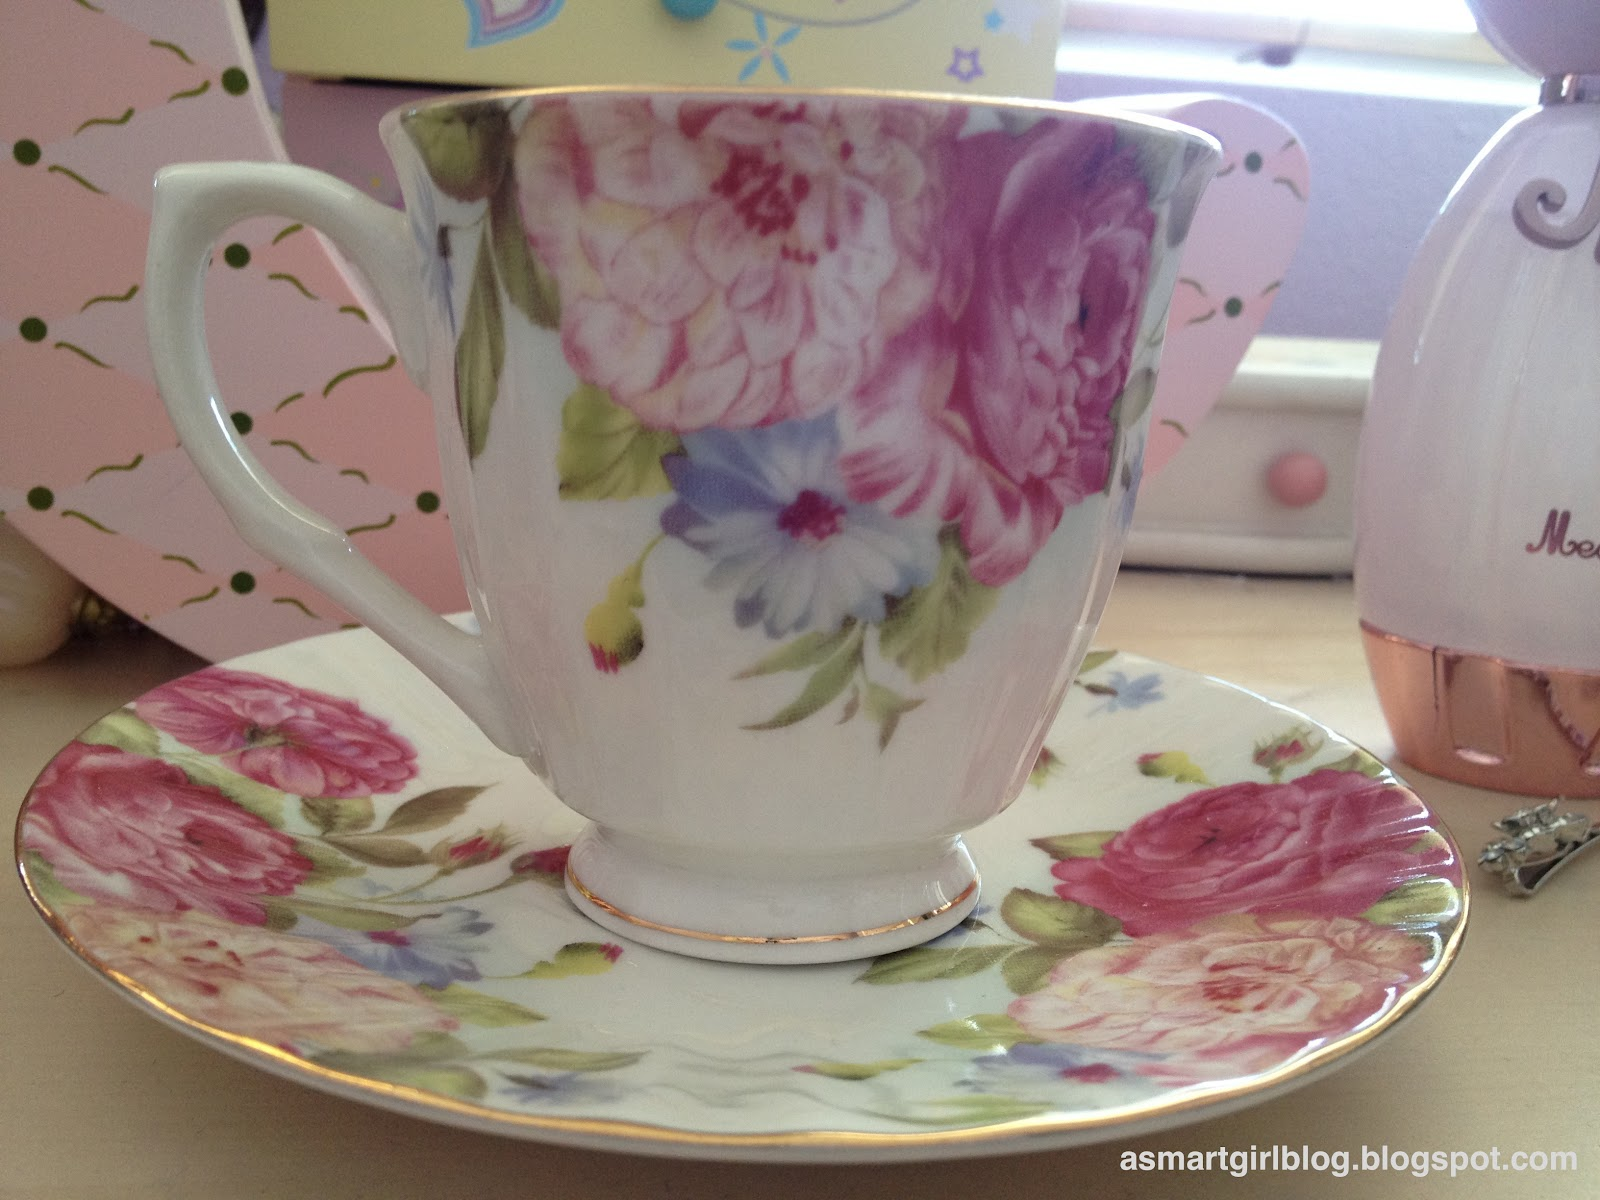 I Got This Tea Cup And Dish Set At A Local Discount Store For $5 $10, Not  That Bad For Such A Cute Set! :)